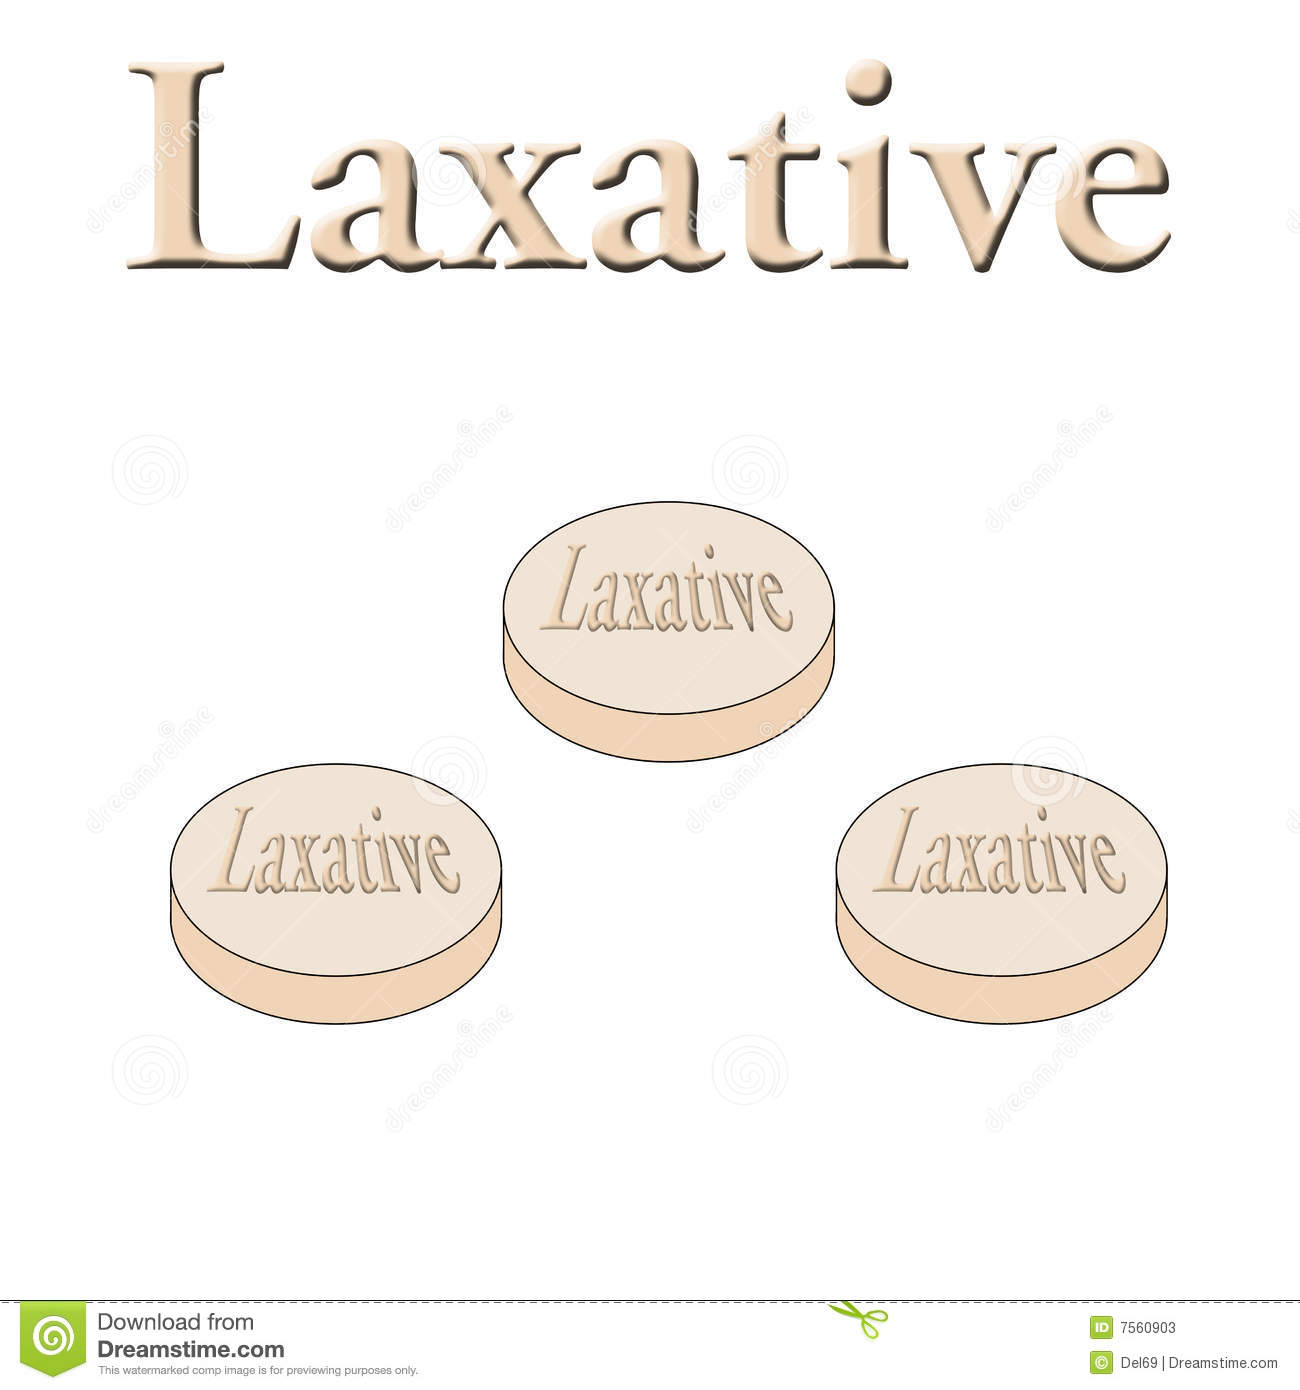 Laxative Stock Photos, Images, & Pictures.